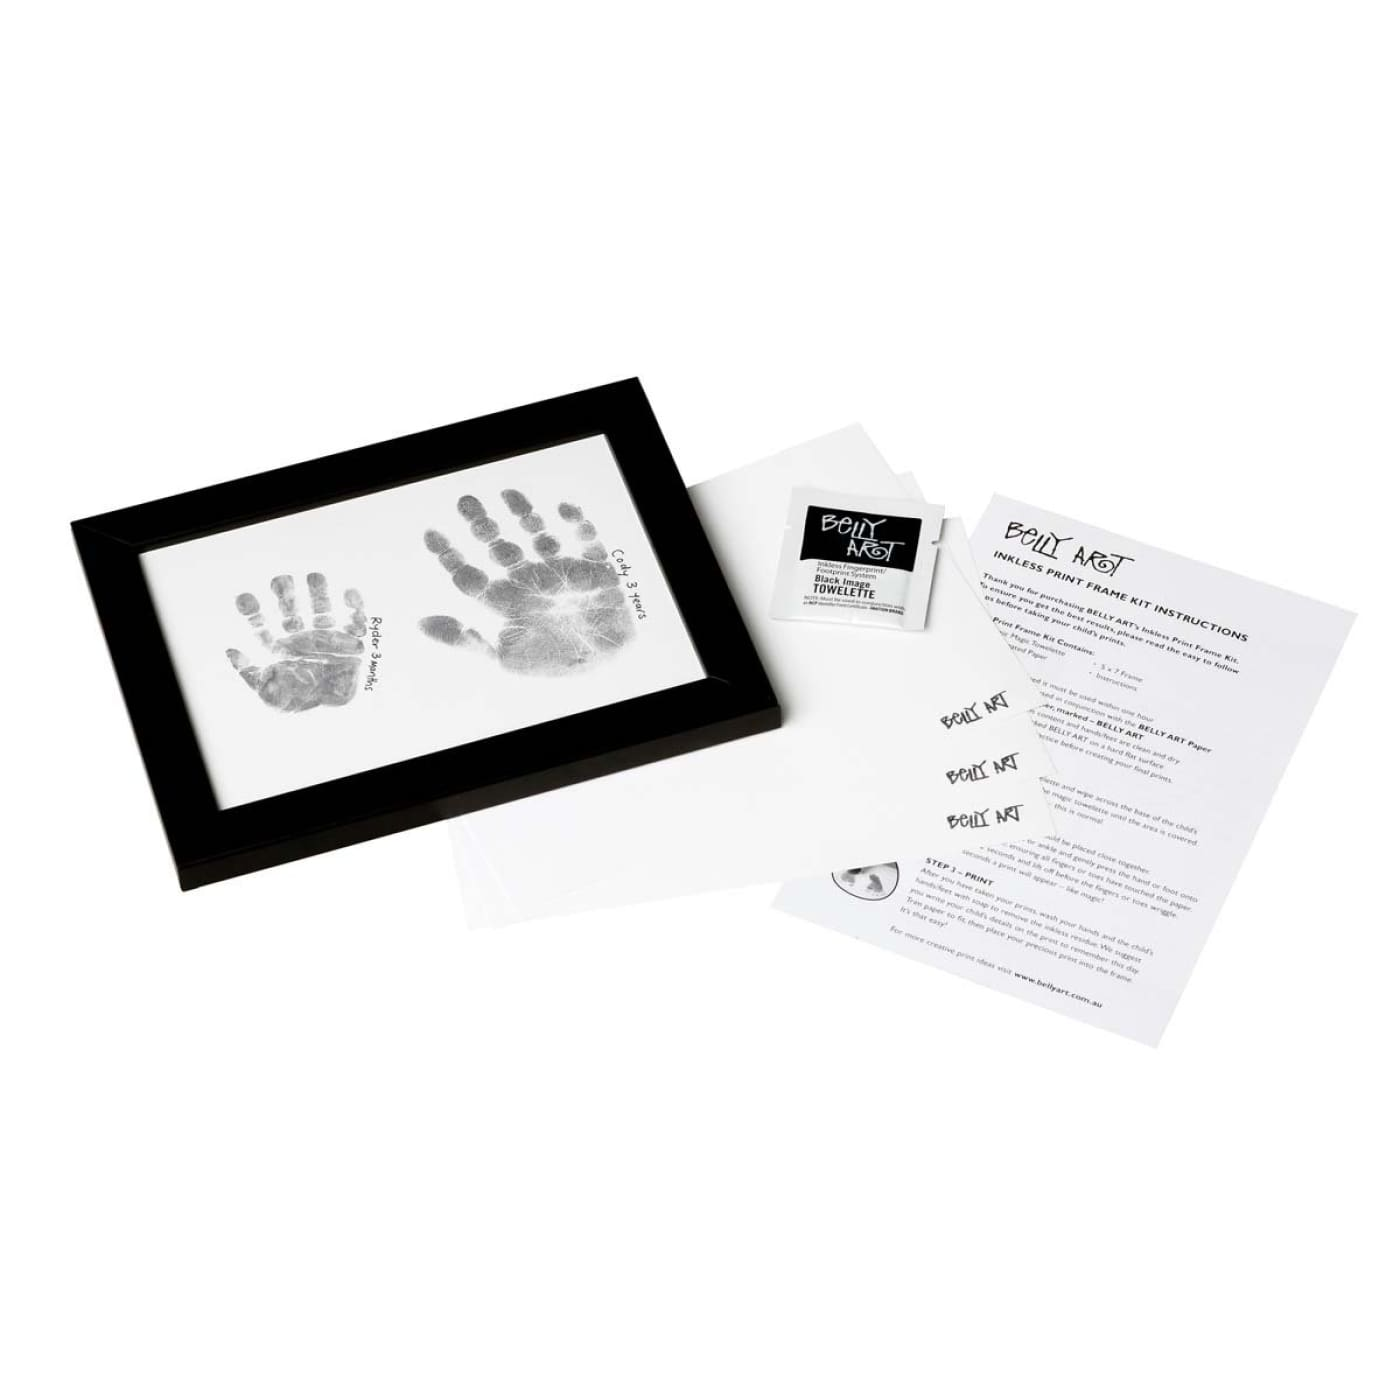 BABY MADE Inkless Print Frame Kit WHITE - GIFTWARE - KEEPSAKES